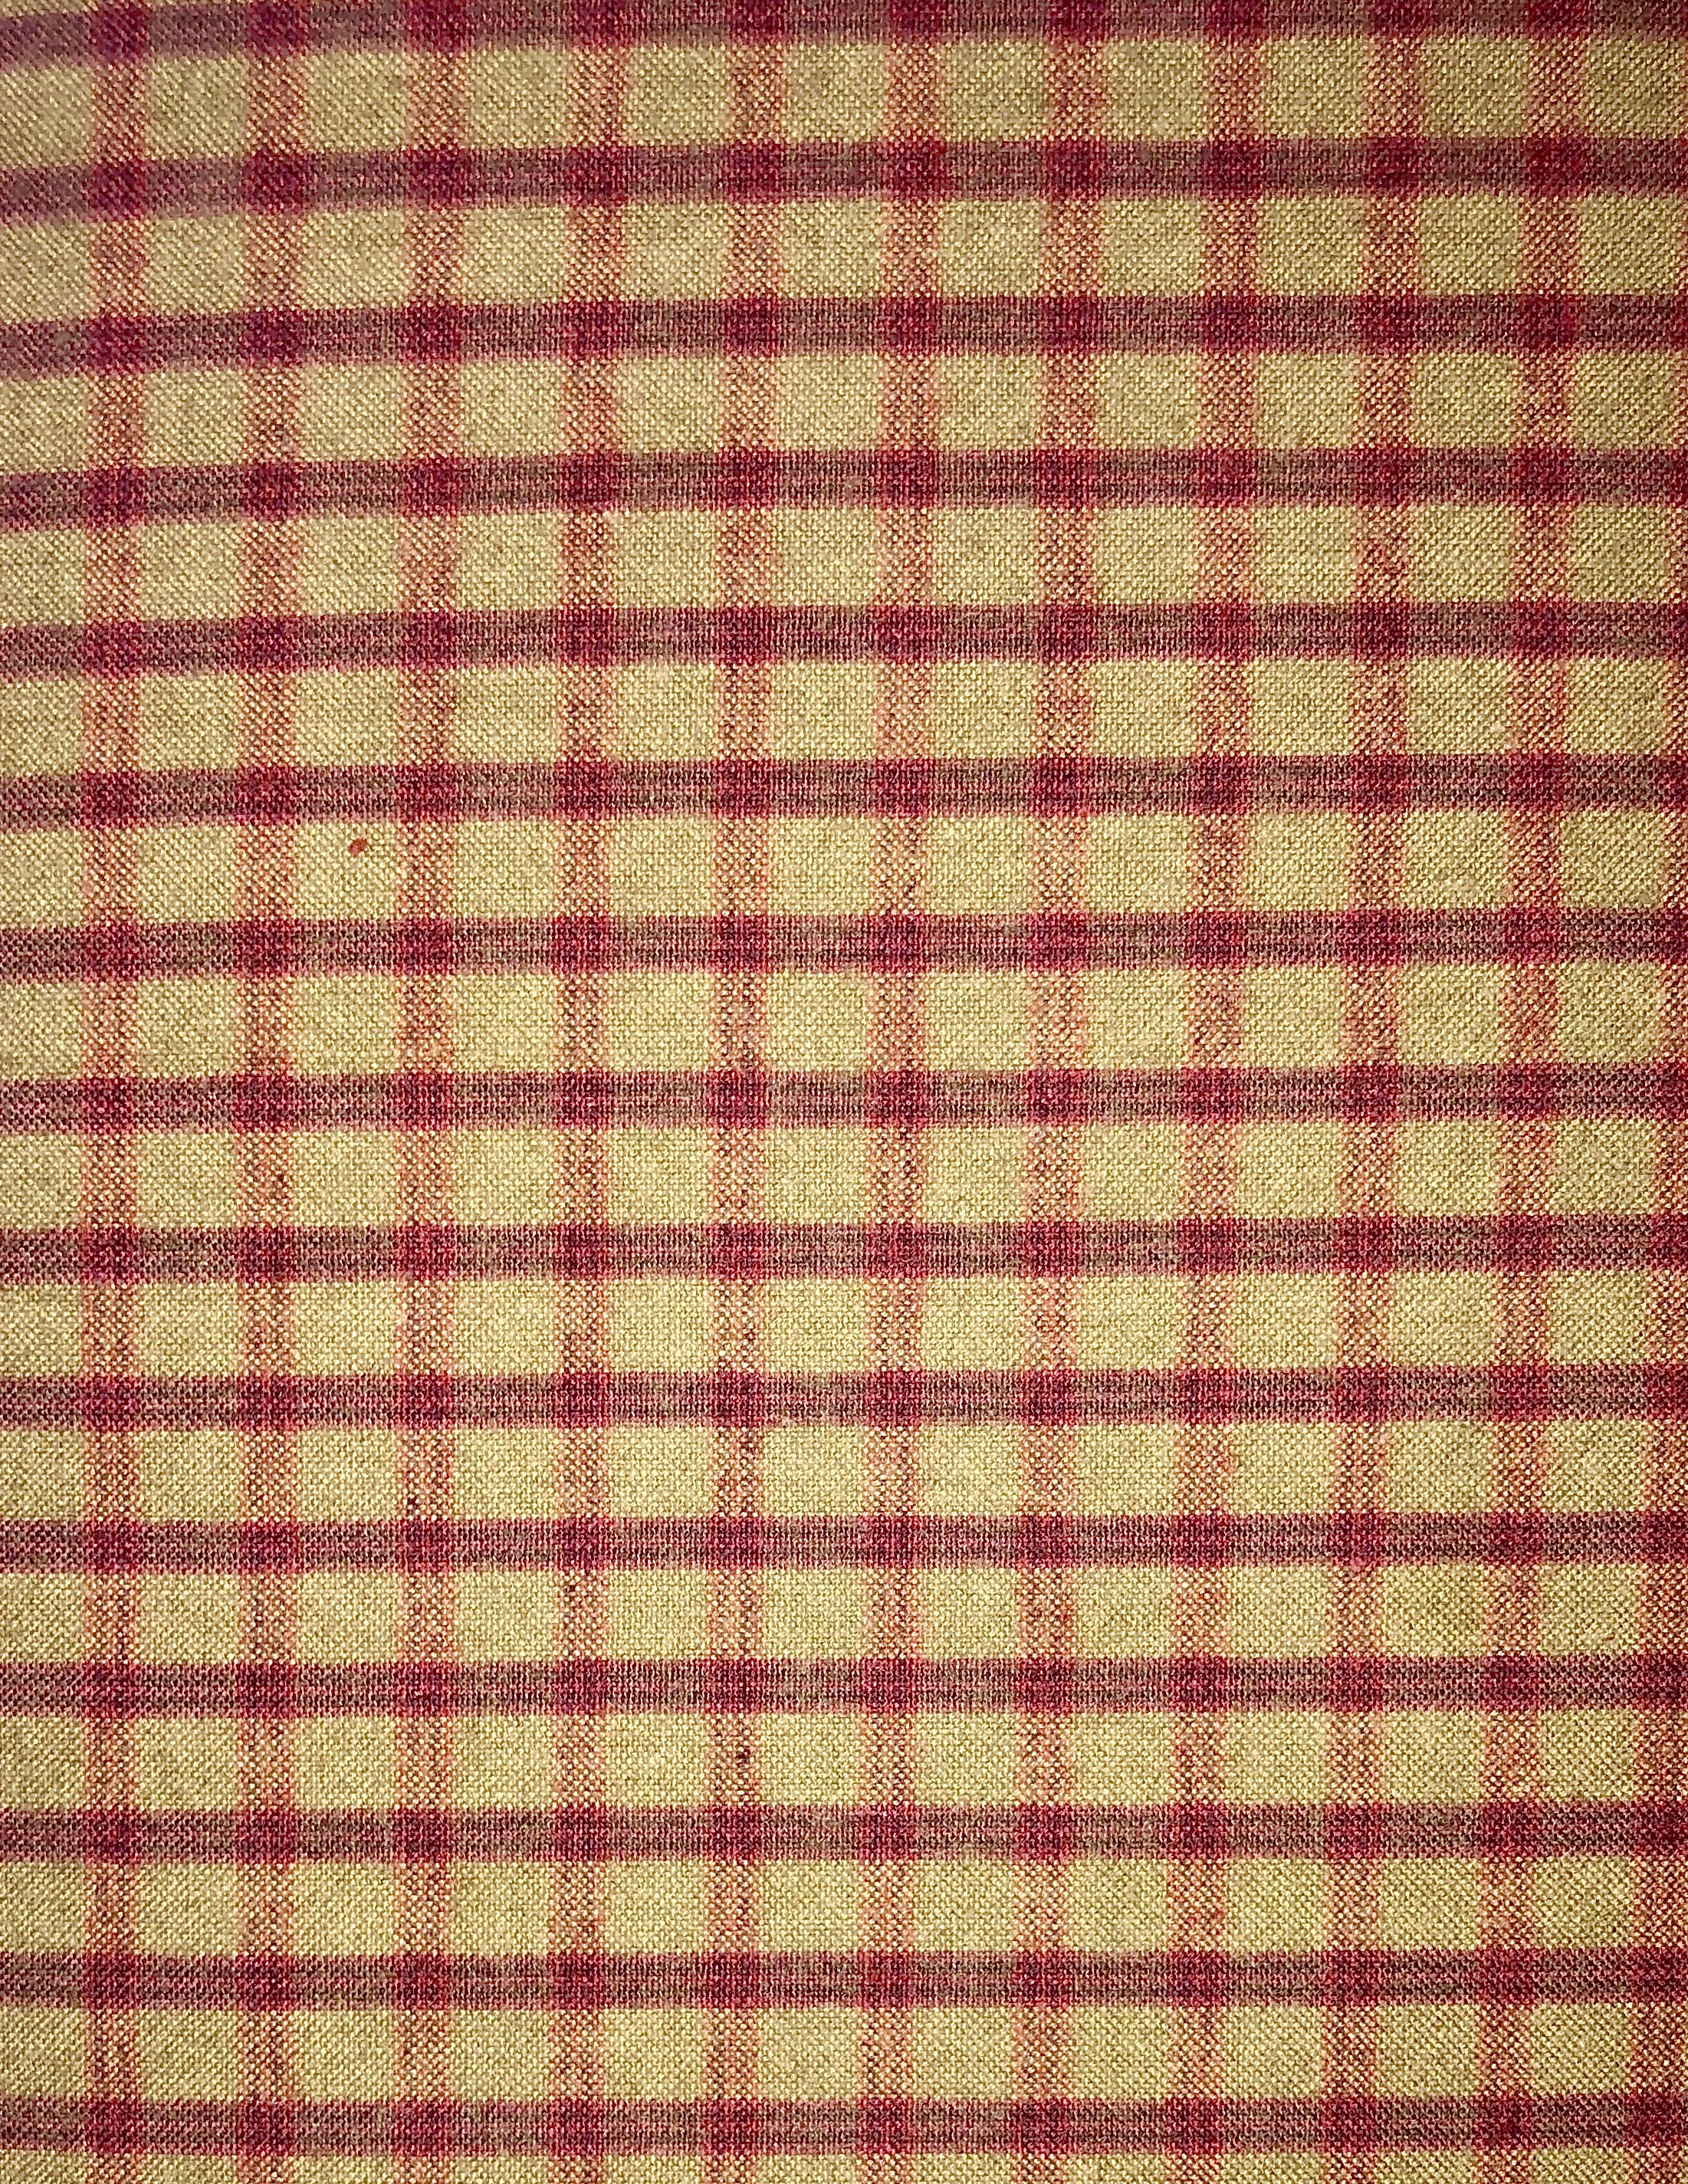 Yarn Dyed Flannel - Tan & Magenta Plaid - 1/2m cut 55170